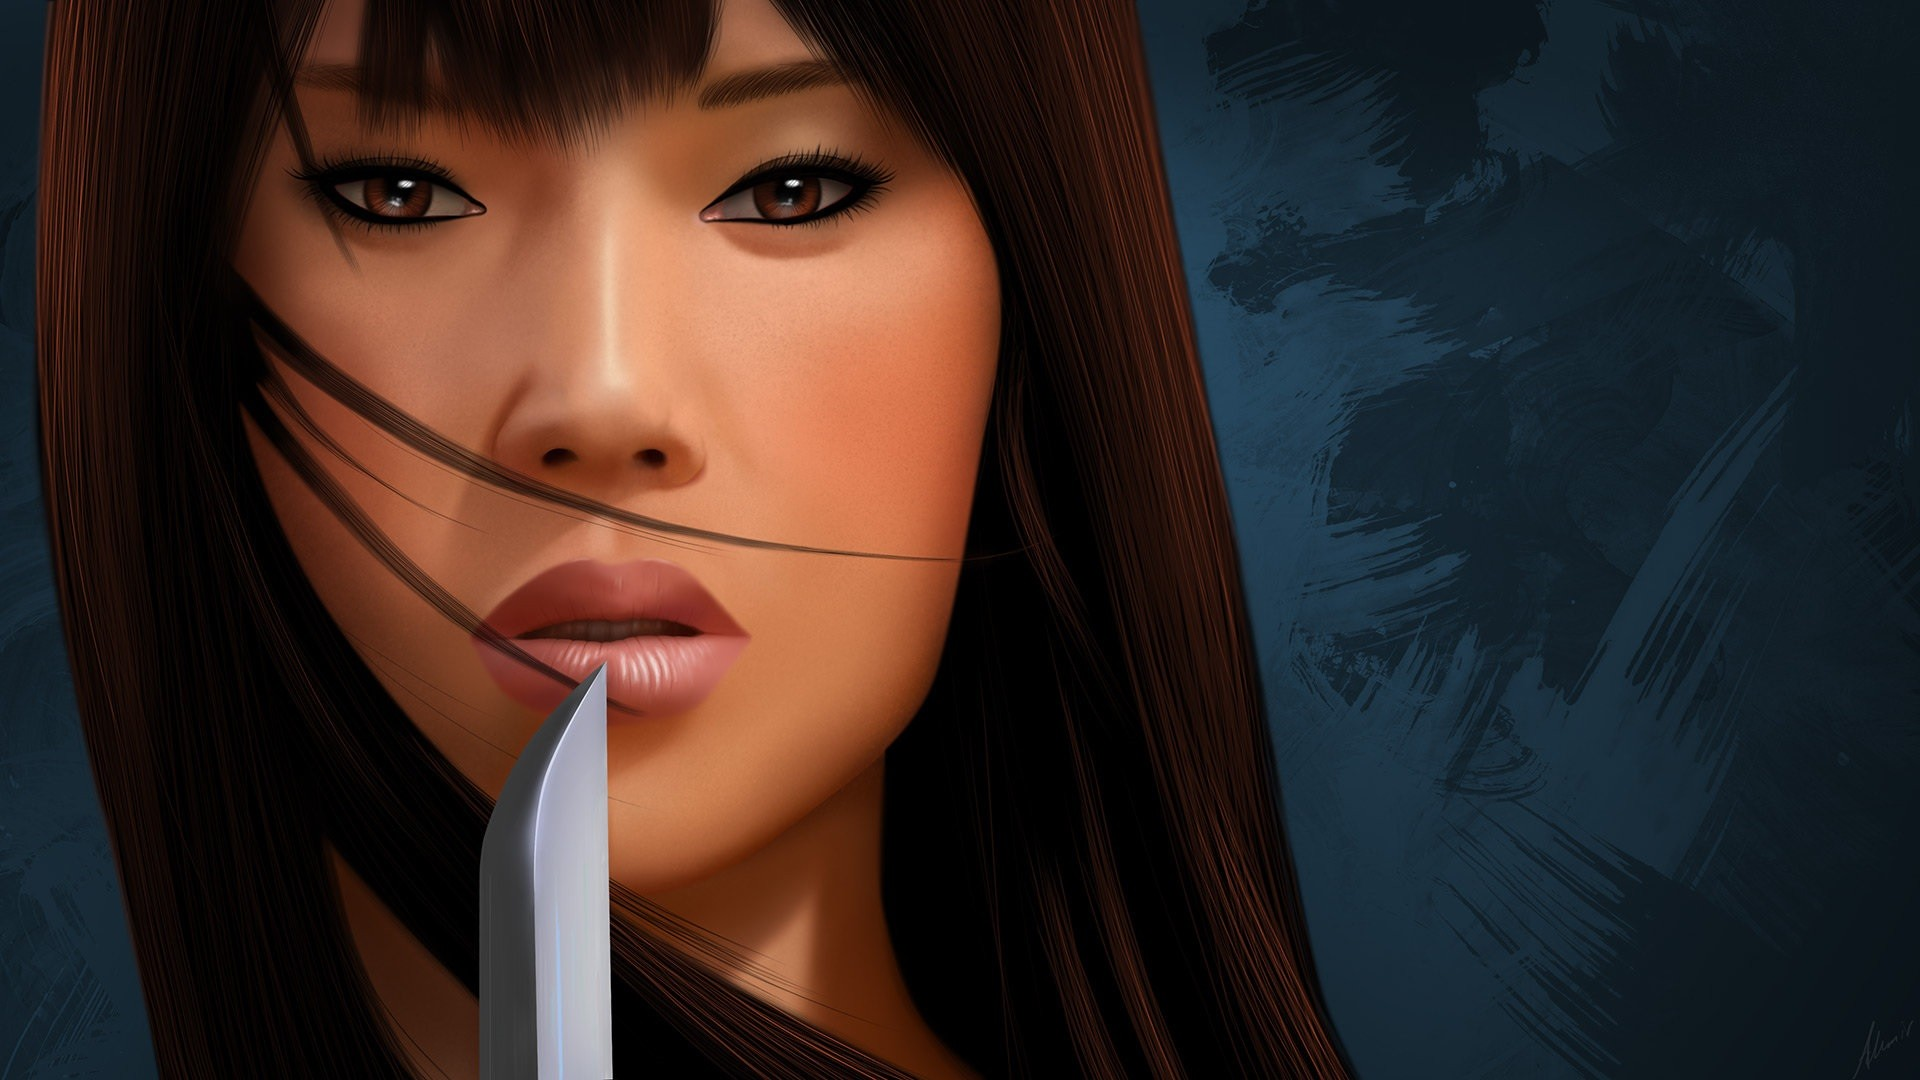 General 1920x1080 Asian drawing digital art women knife